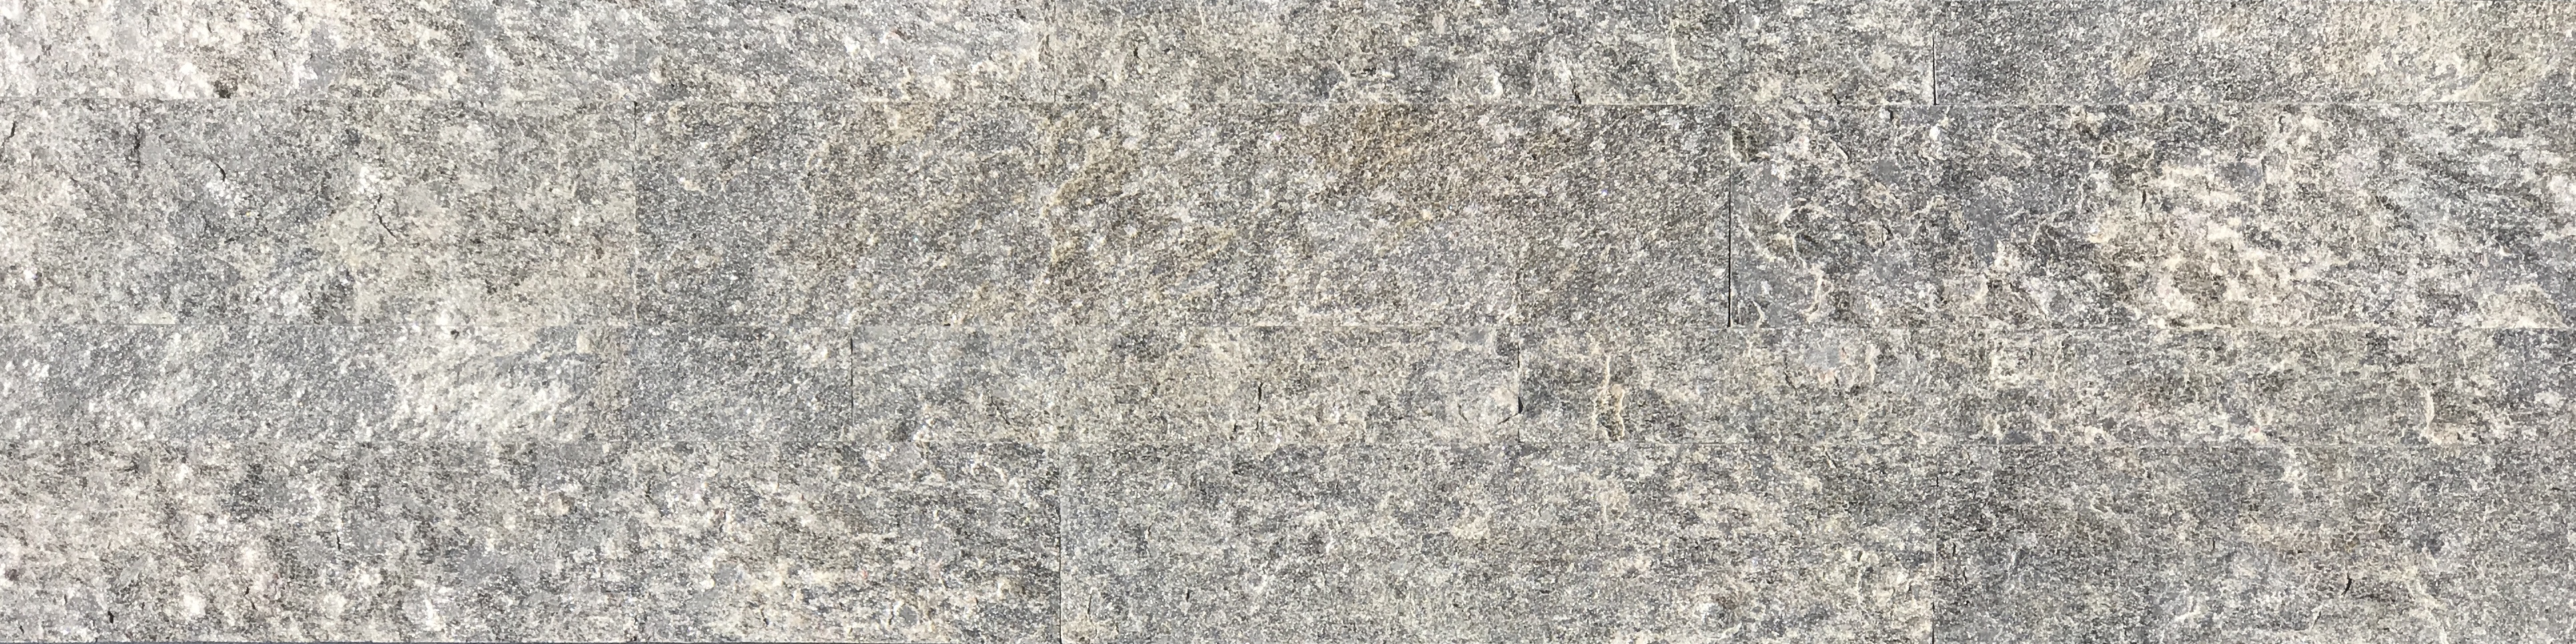 Alpine Grey Slimline Ledgestone Panel Image